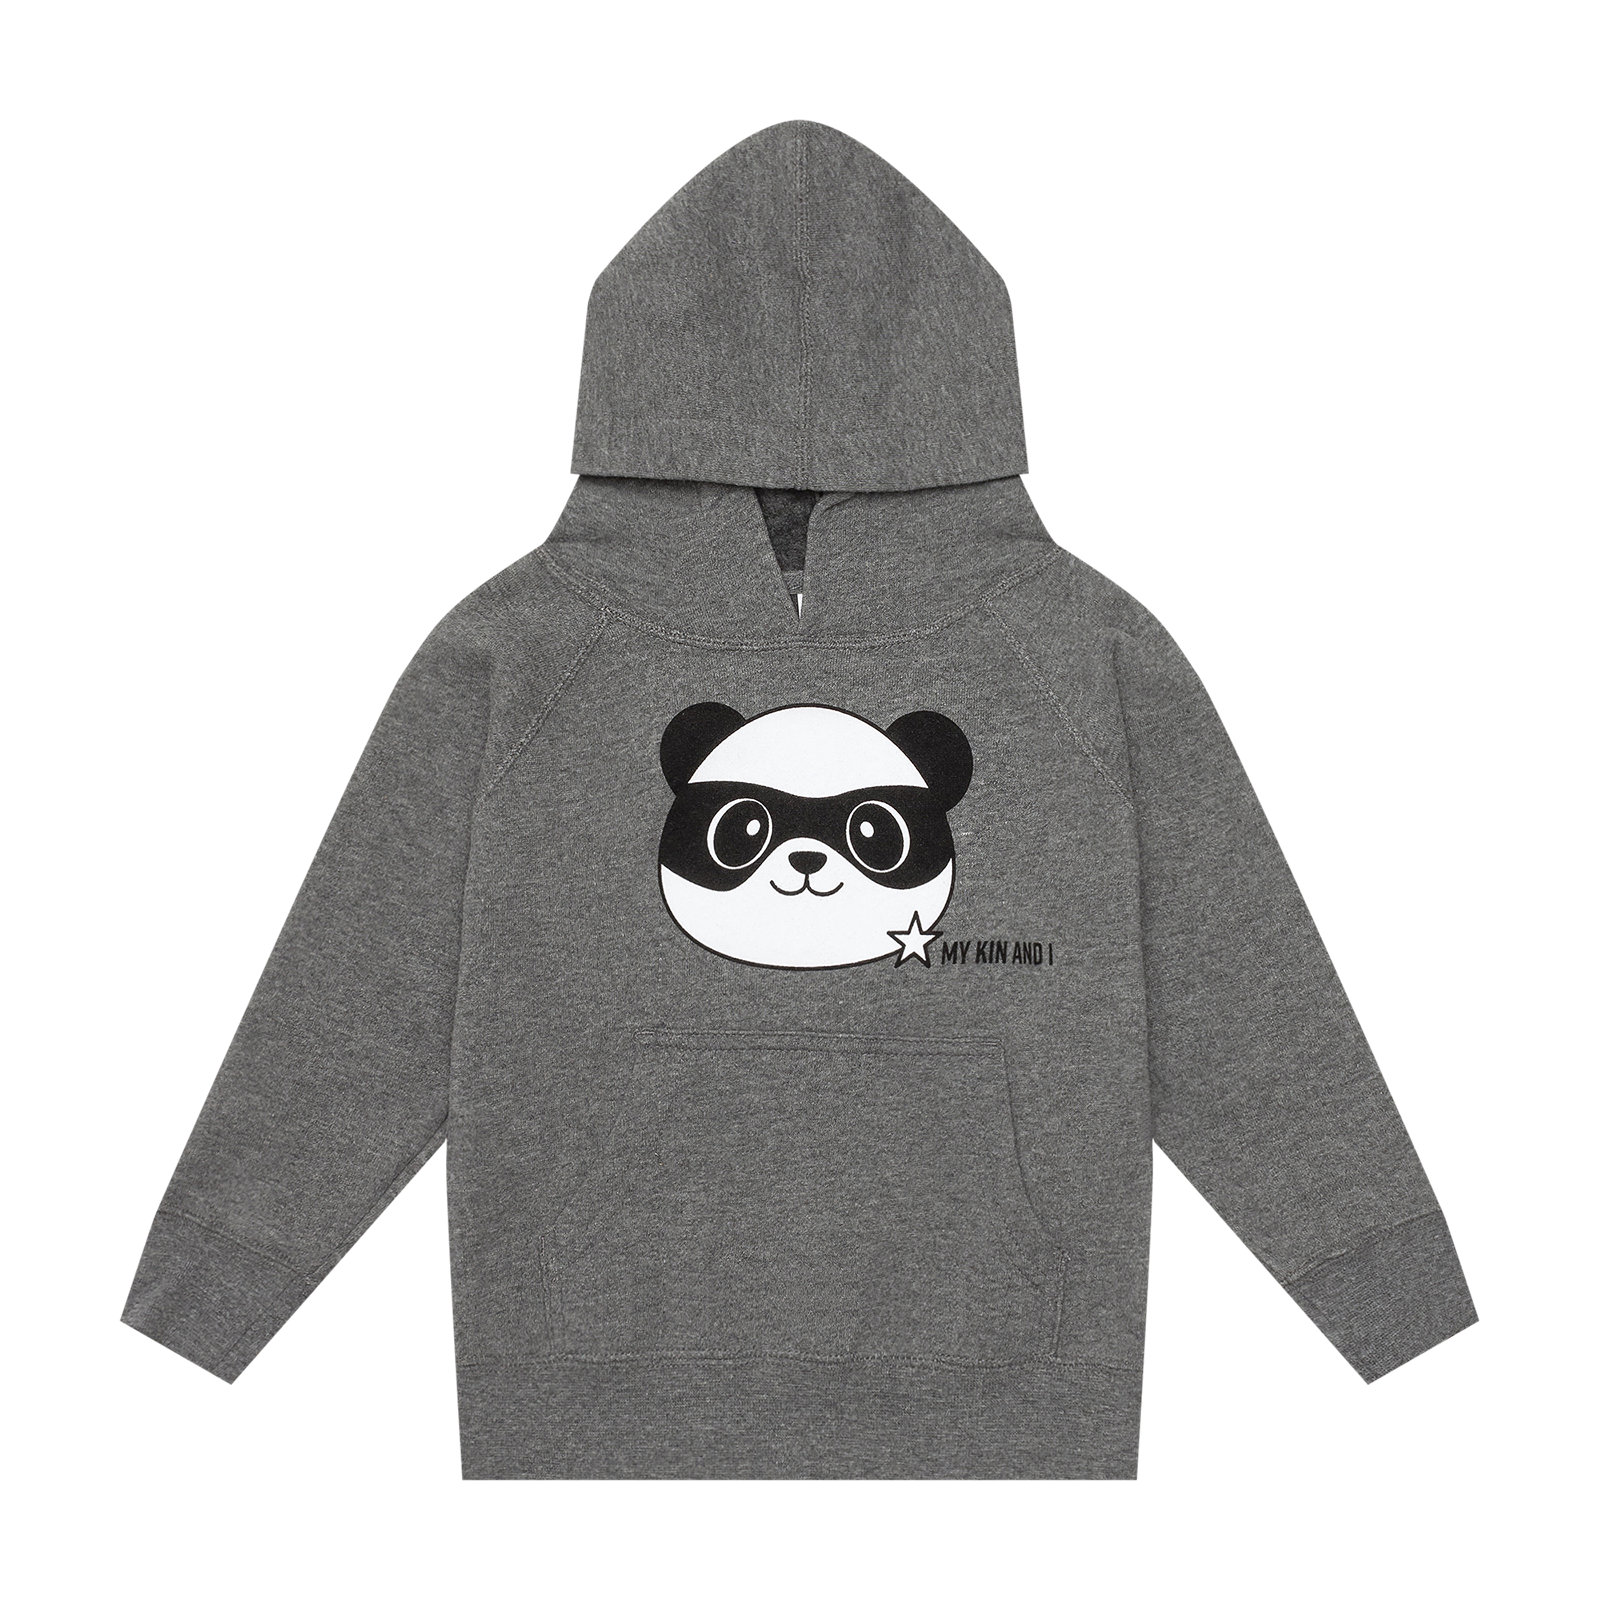 Hoodie flat lay product photo